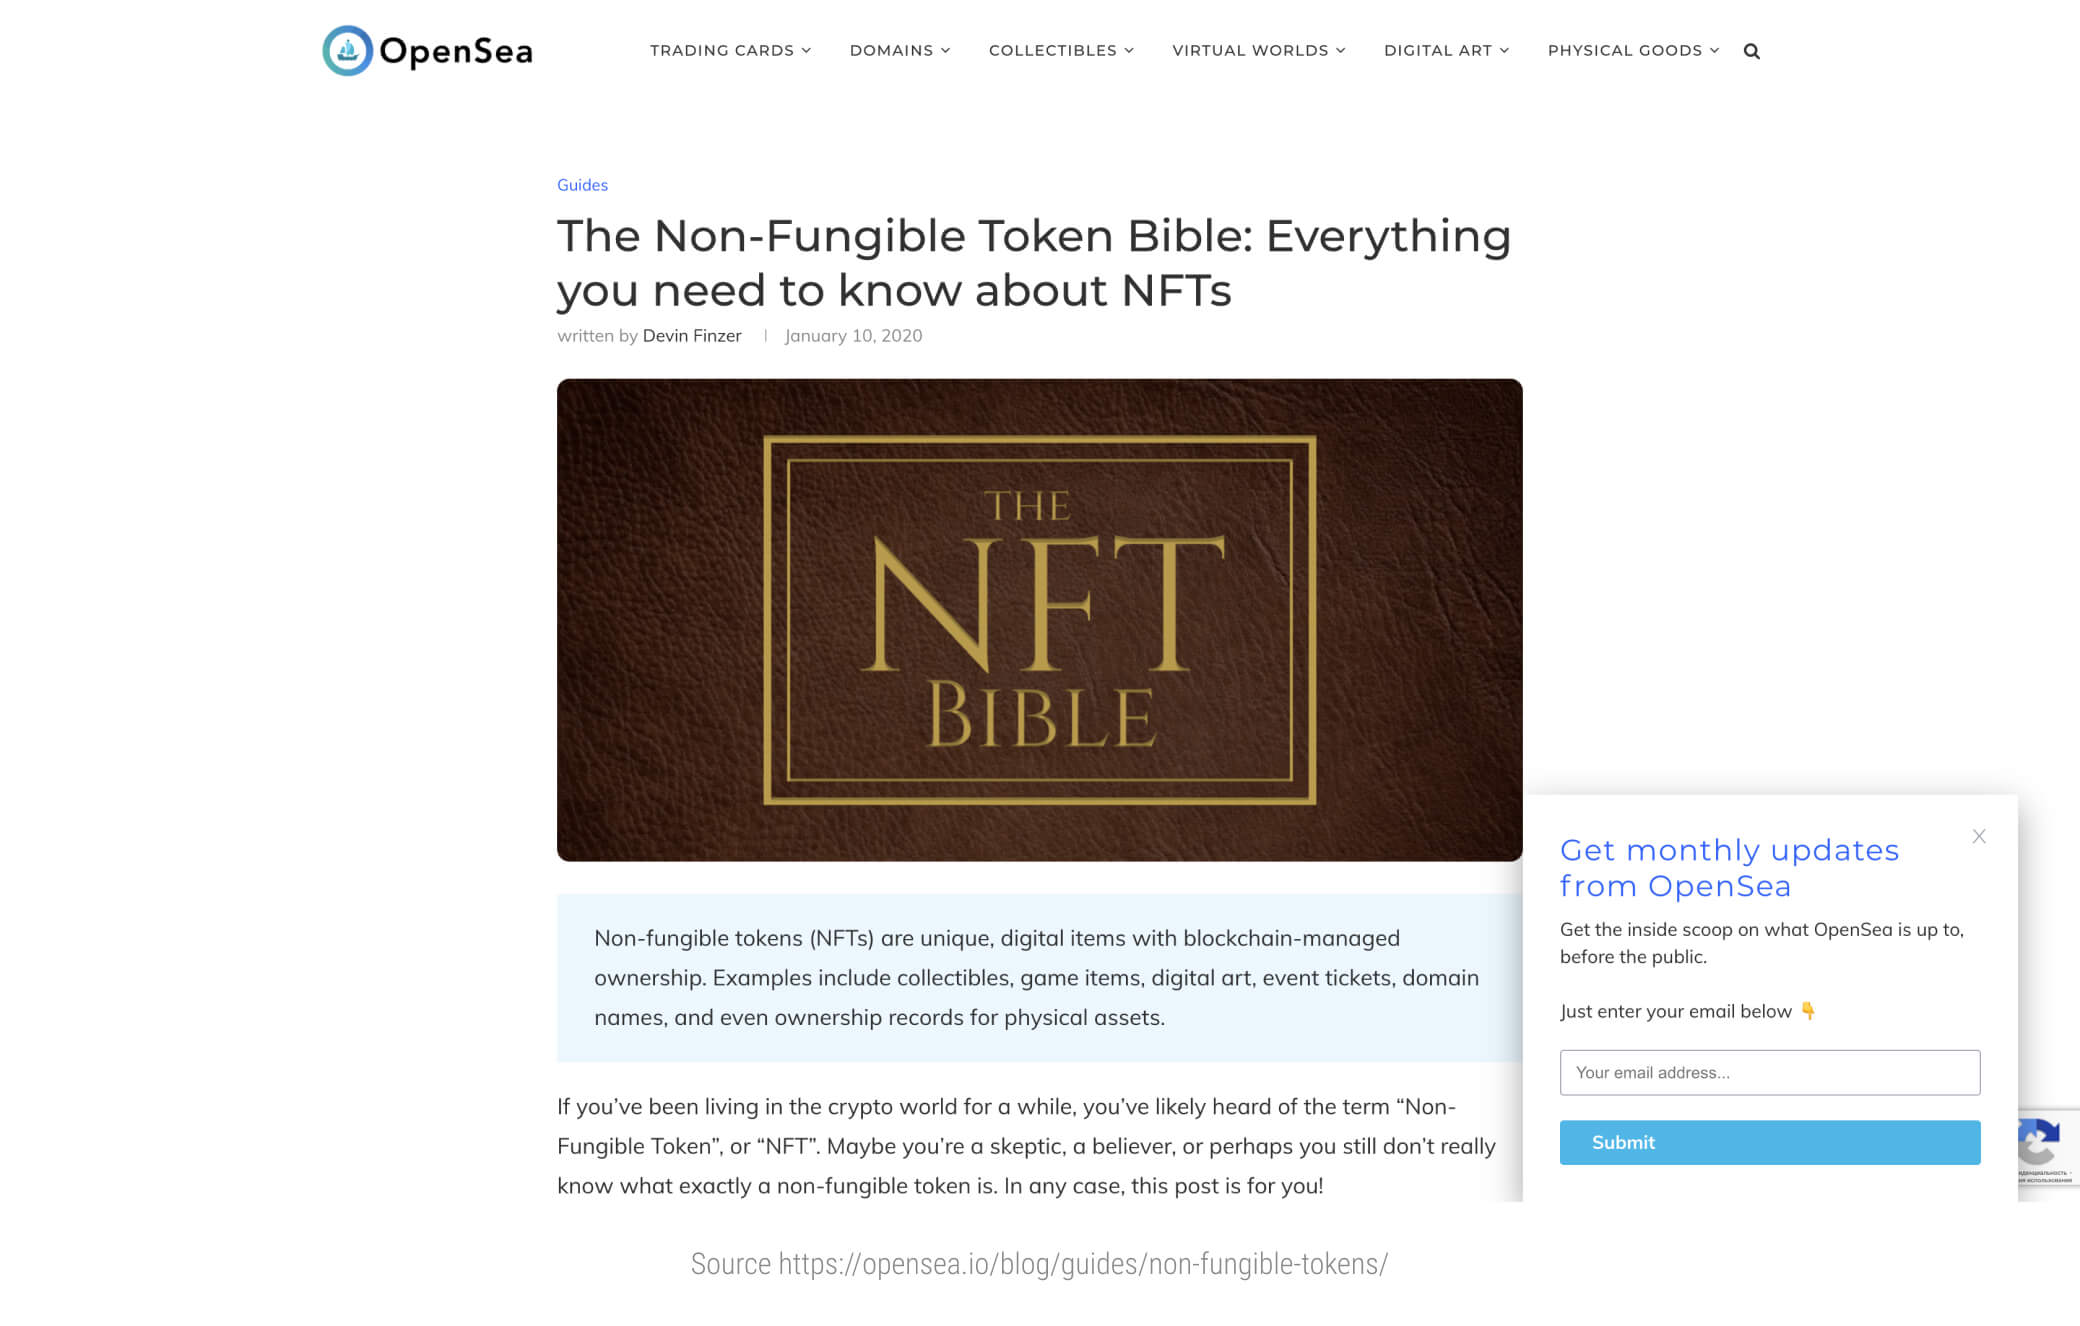 The-Non-Fungible-Token-Bible_-Everything-you-need-to-know-about-NFTs